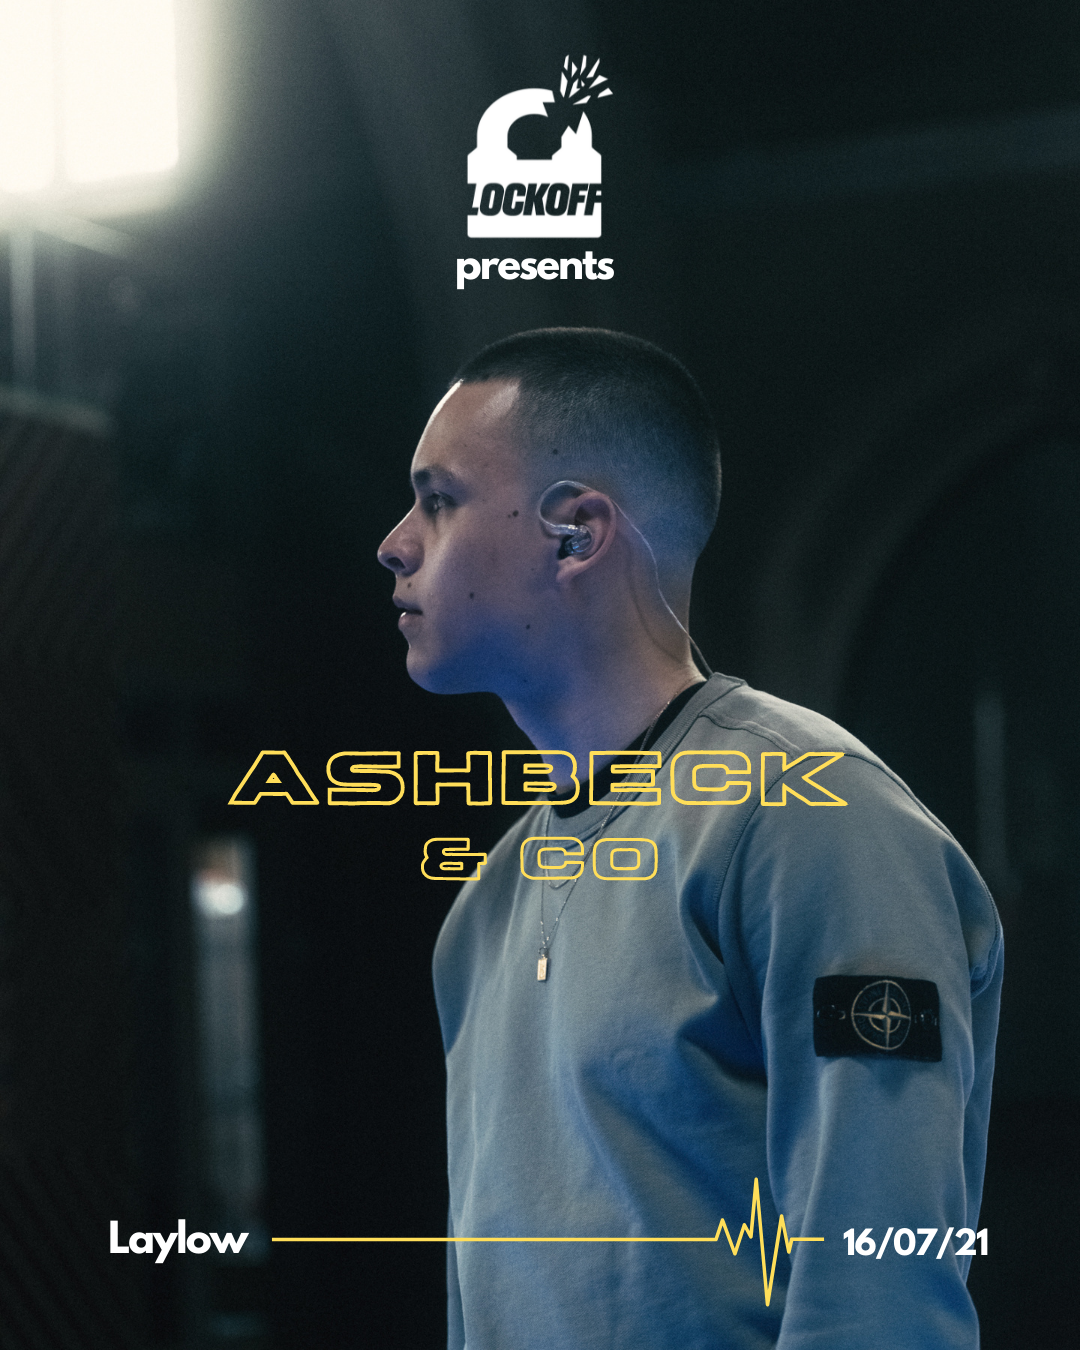 Lockoff presents: Ashbeck & Co